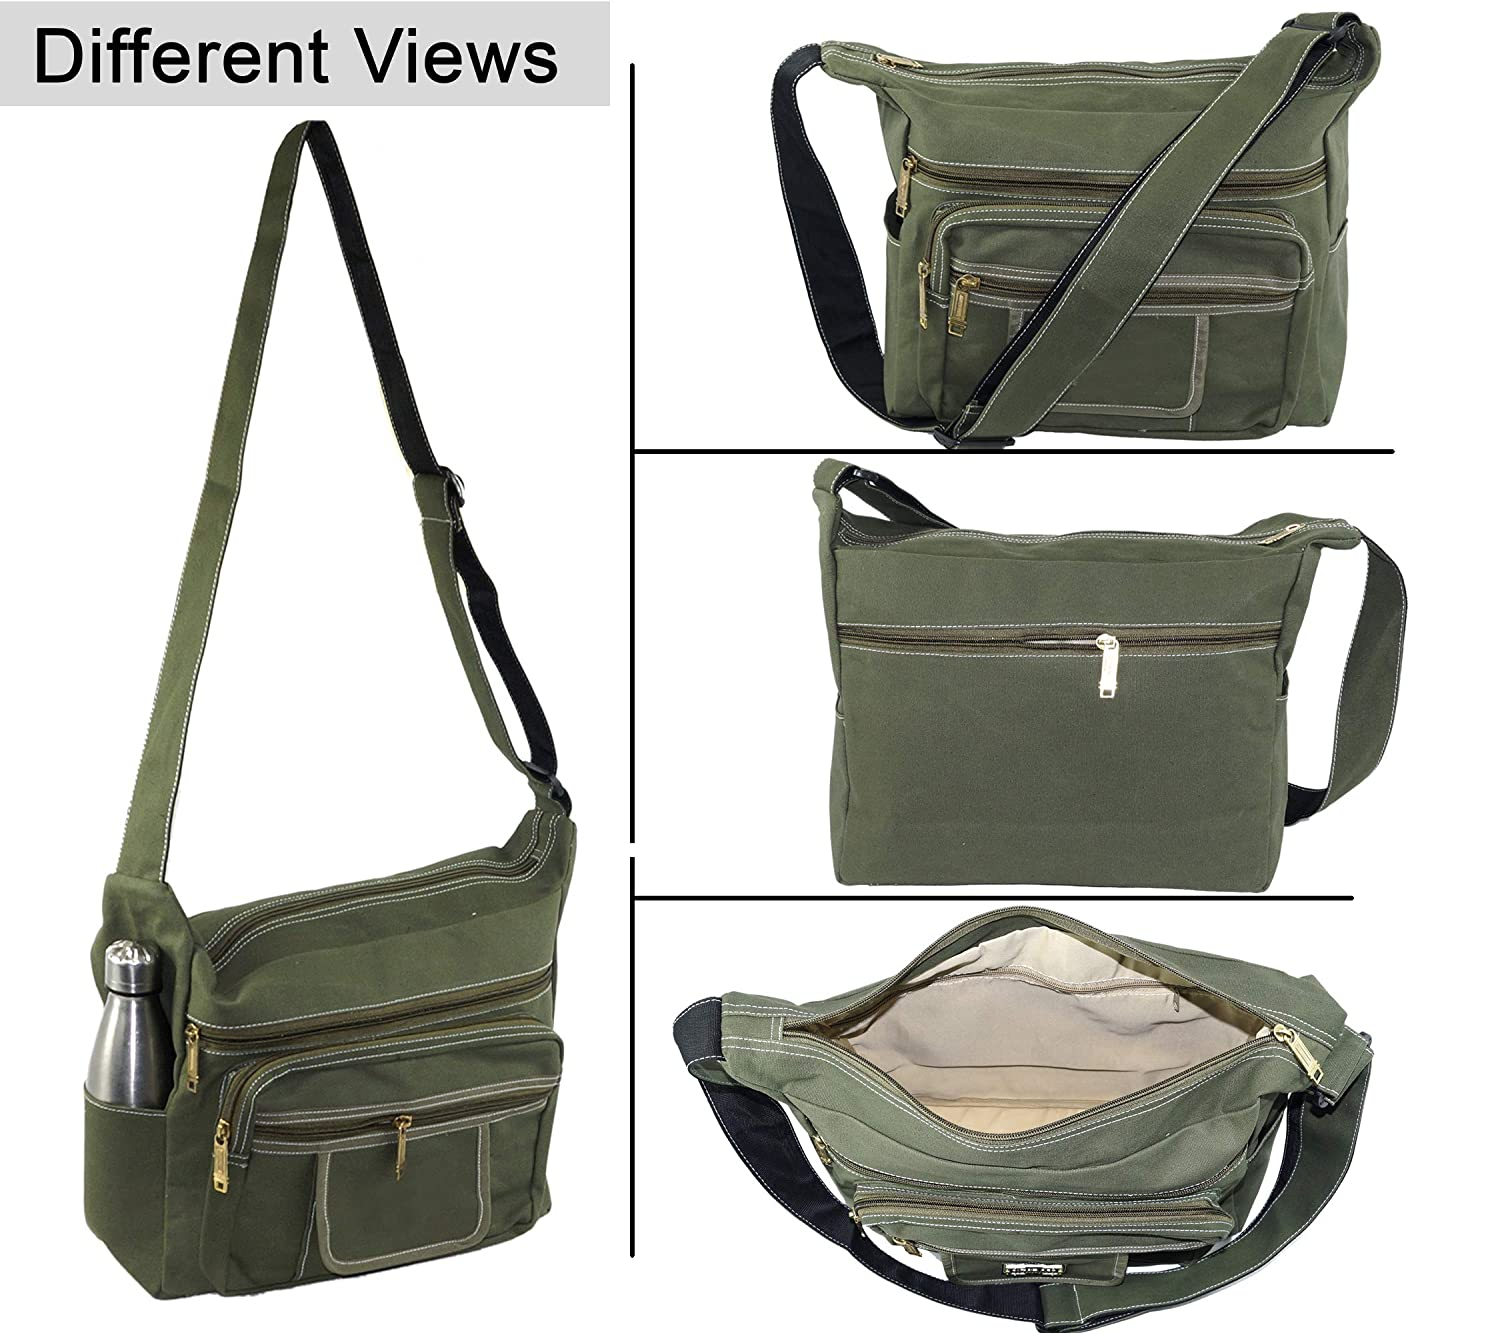 c1f553c88239 Buy SEPAL Canvas Cross Body One Side Shoulder Sling Bag for Men   Women  Green Online at Low Prices in India - Amazon.in